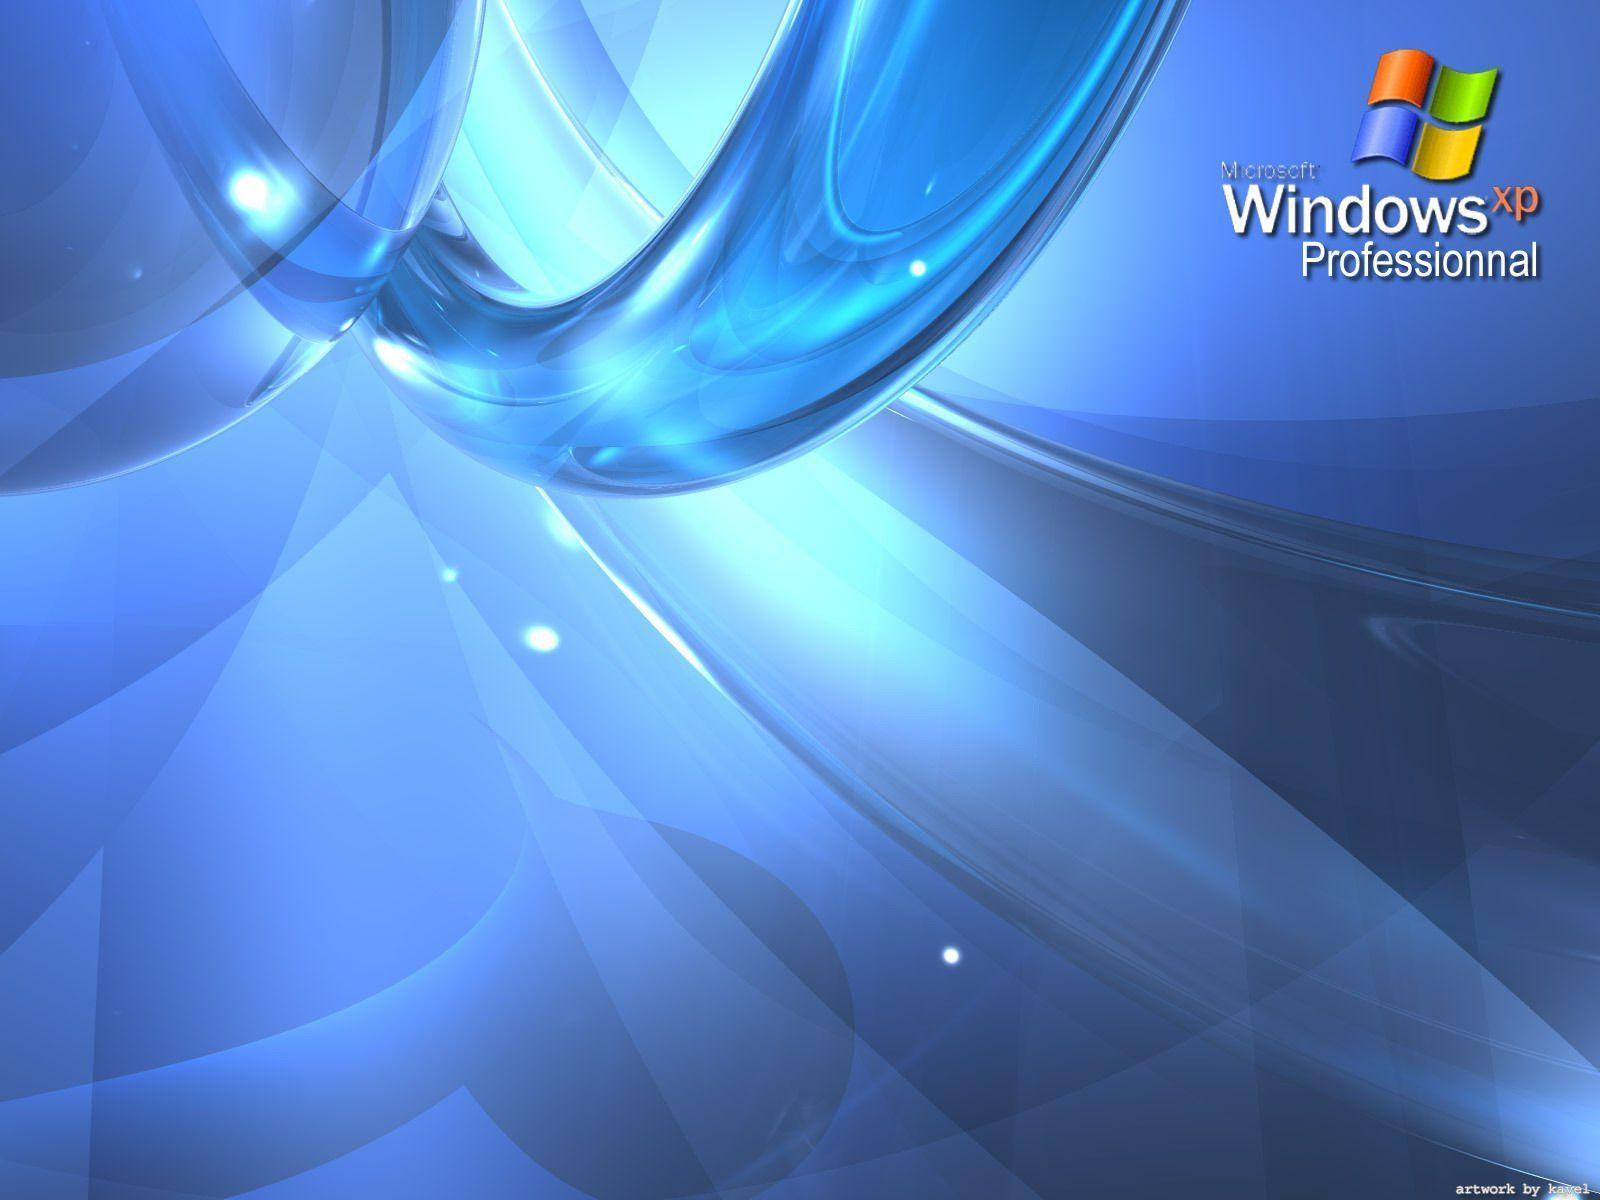 Free wallpapers for windows xp wallpaper cave - Car wallpaper for windows xp ...